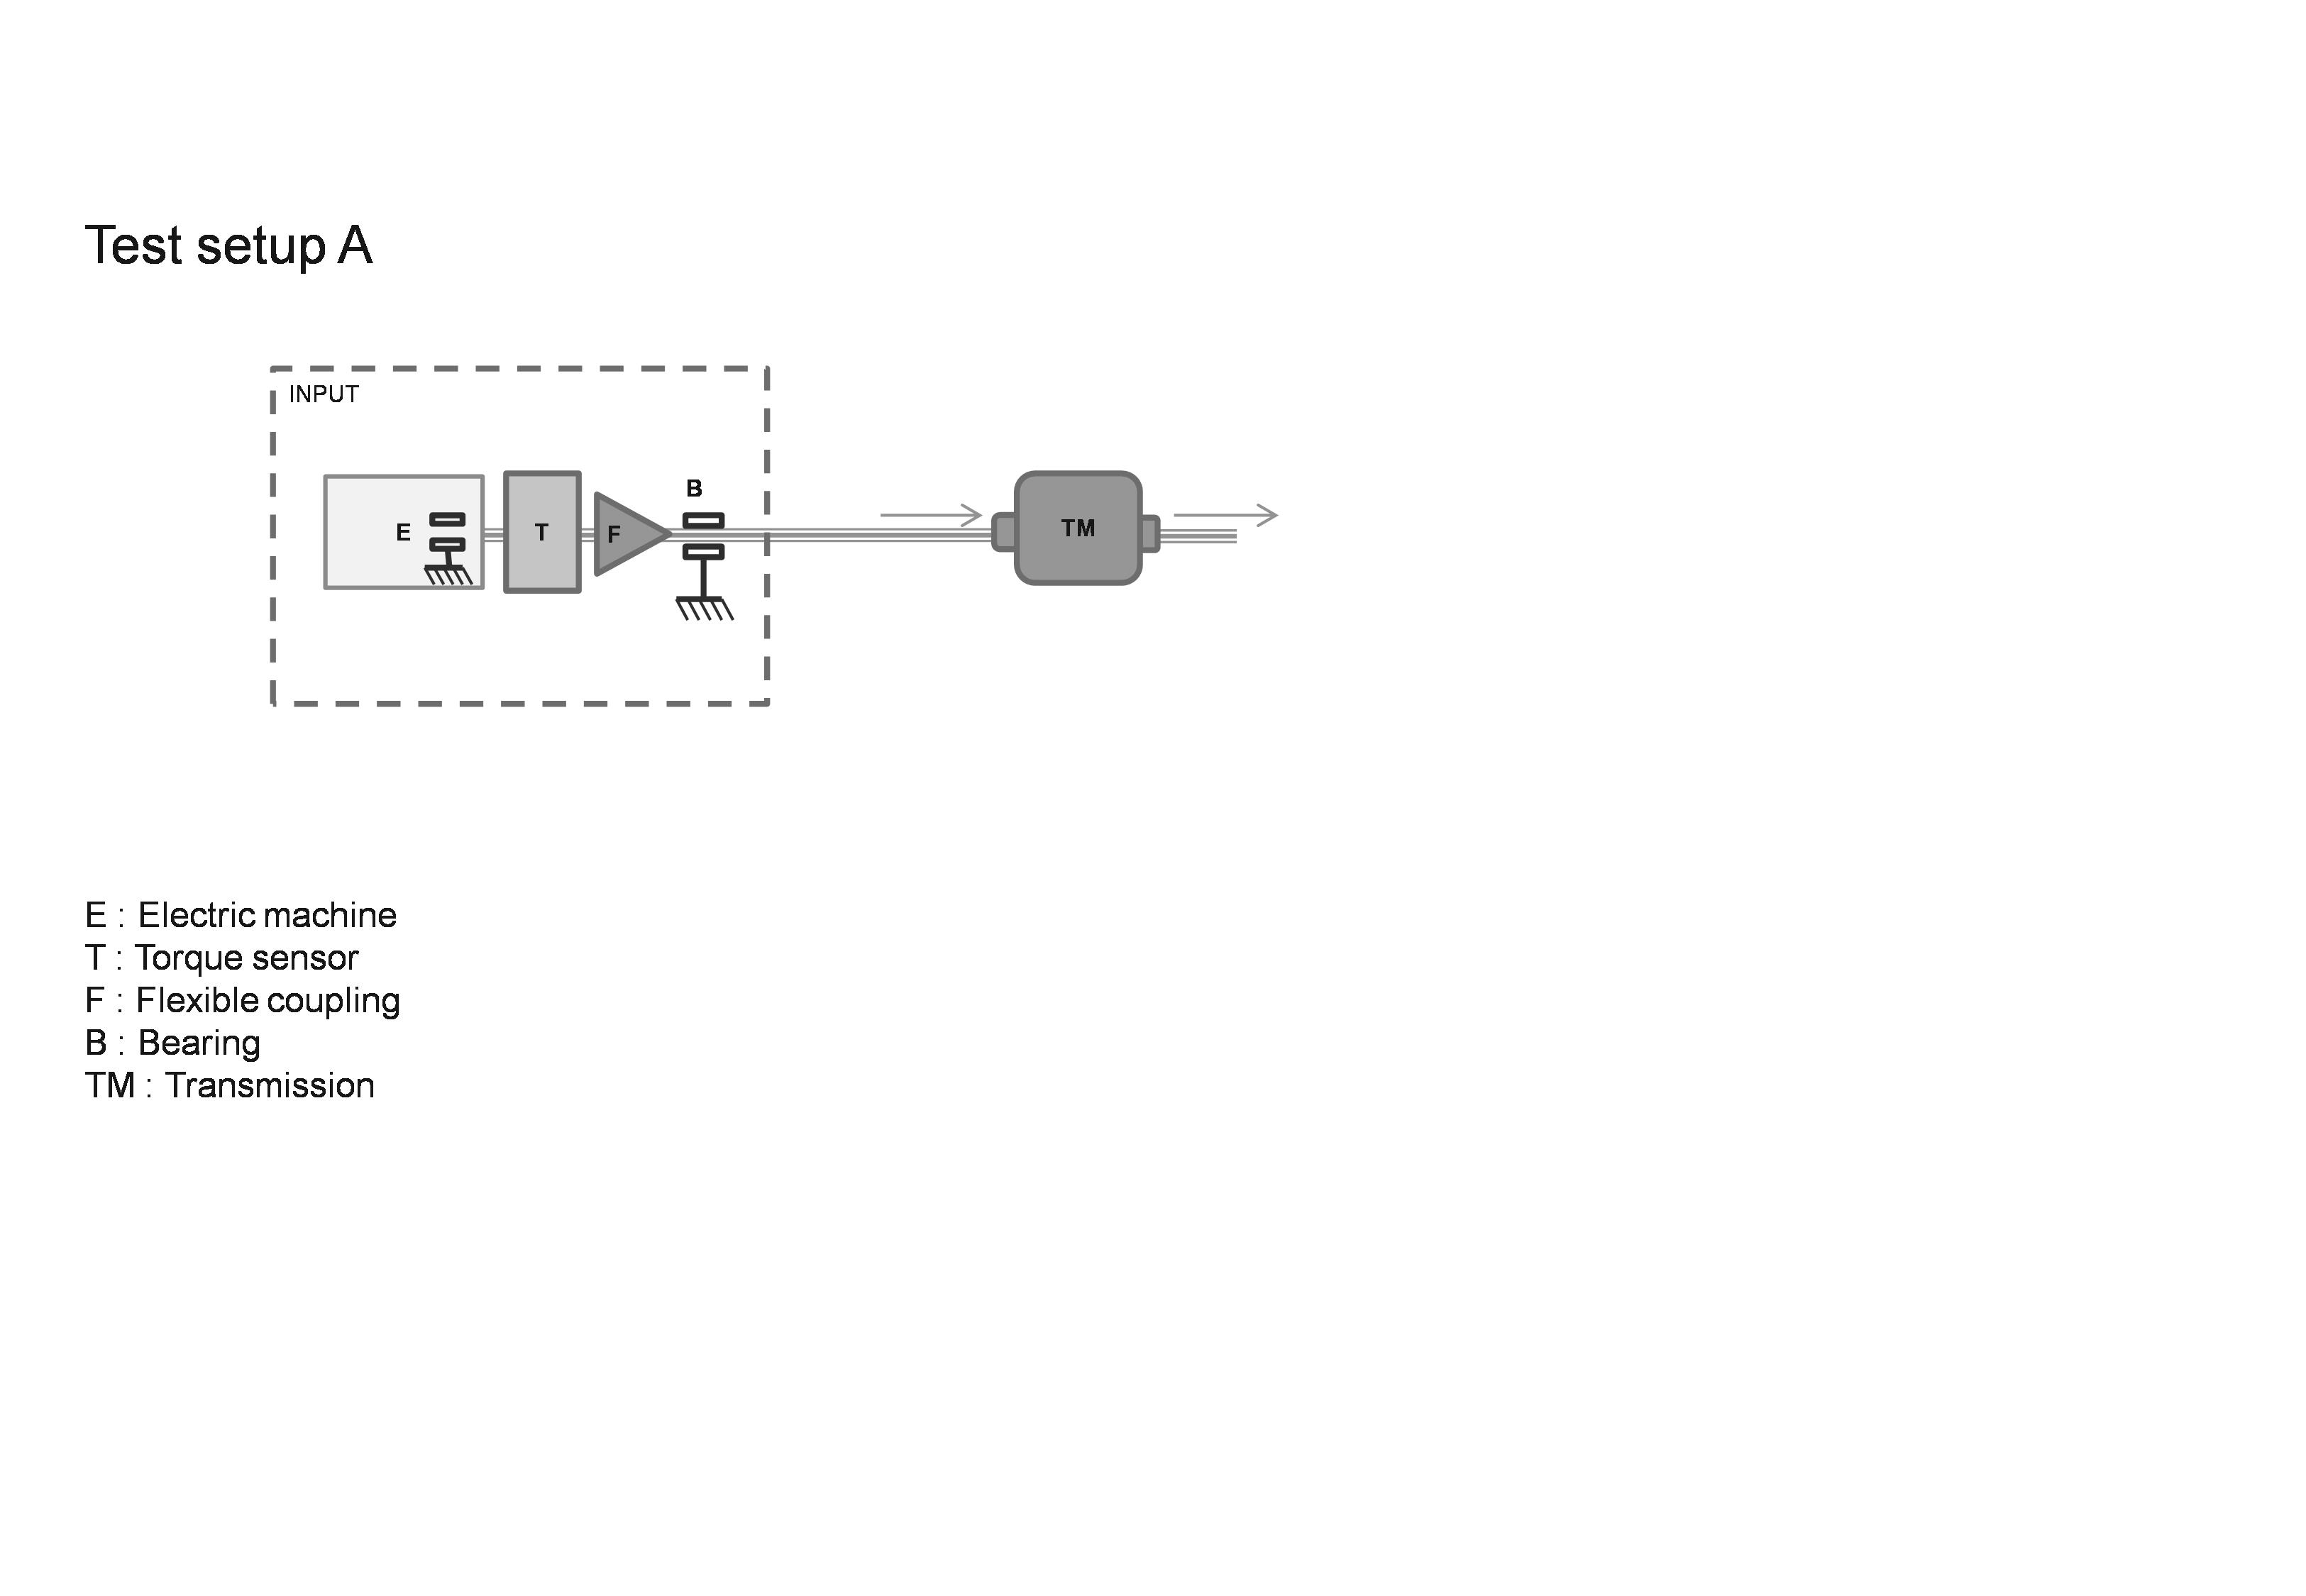 Eur Lex C20177937 En The Followingsystem Diagram Illustrates A Typical Configuration B 50 In Case Of Bearings Isolating Parasitic Forces Front And Behind Sensor No Flexible Coupling Installed Functionally Next To